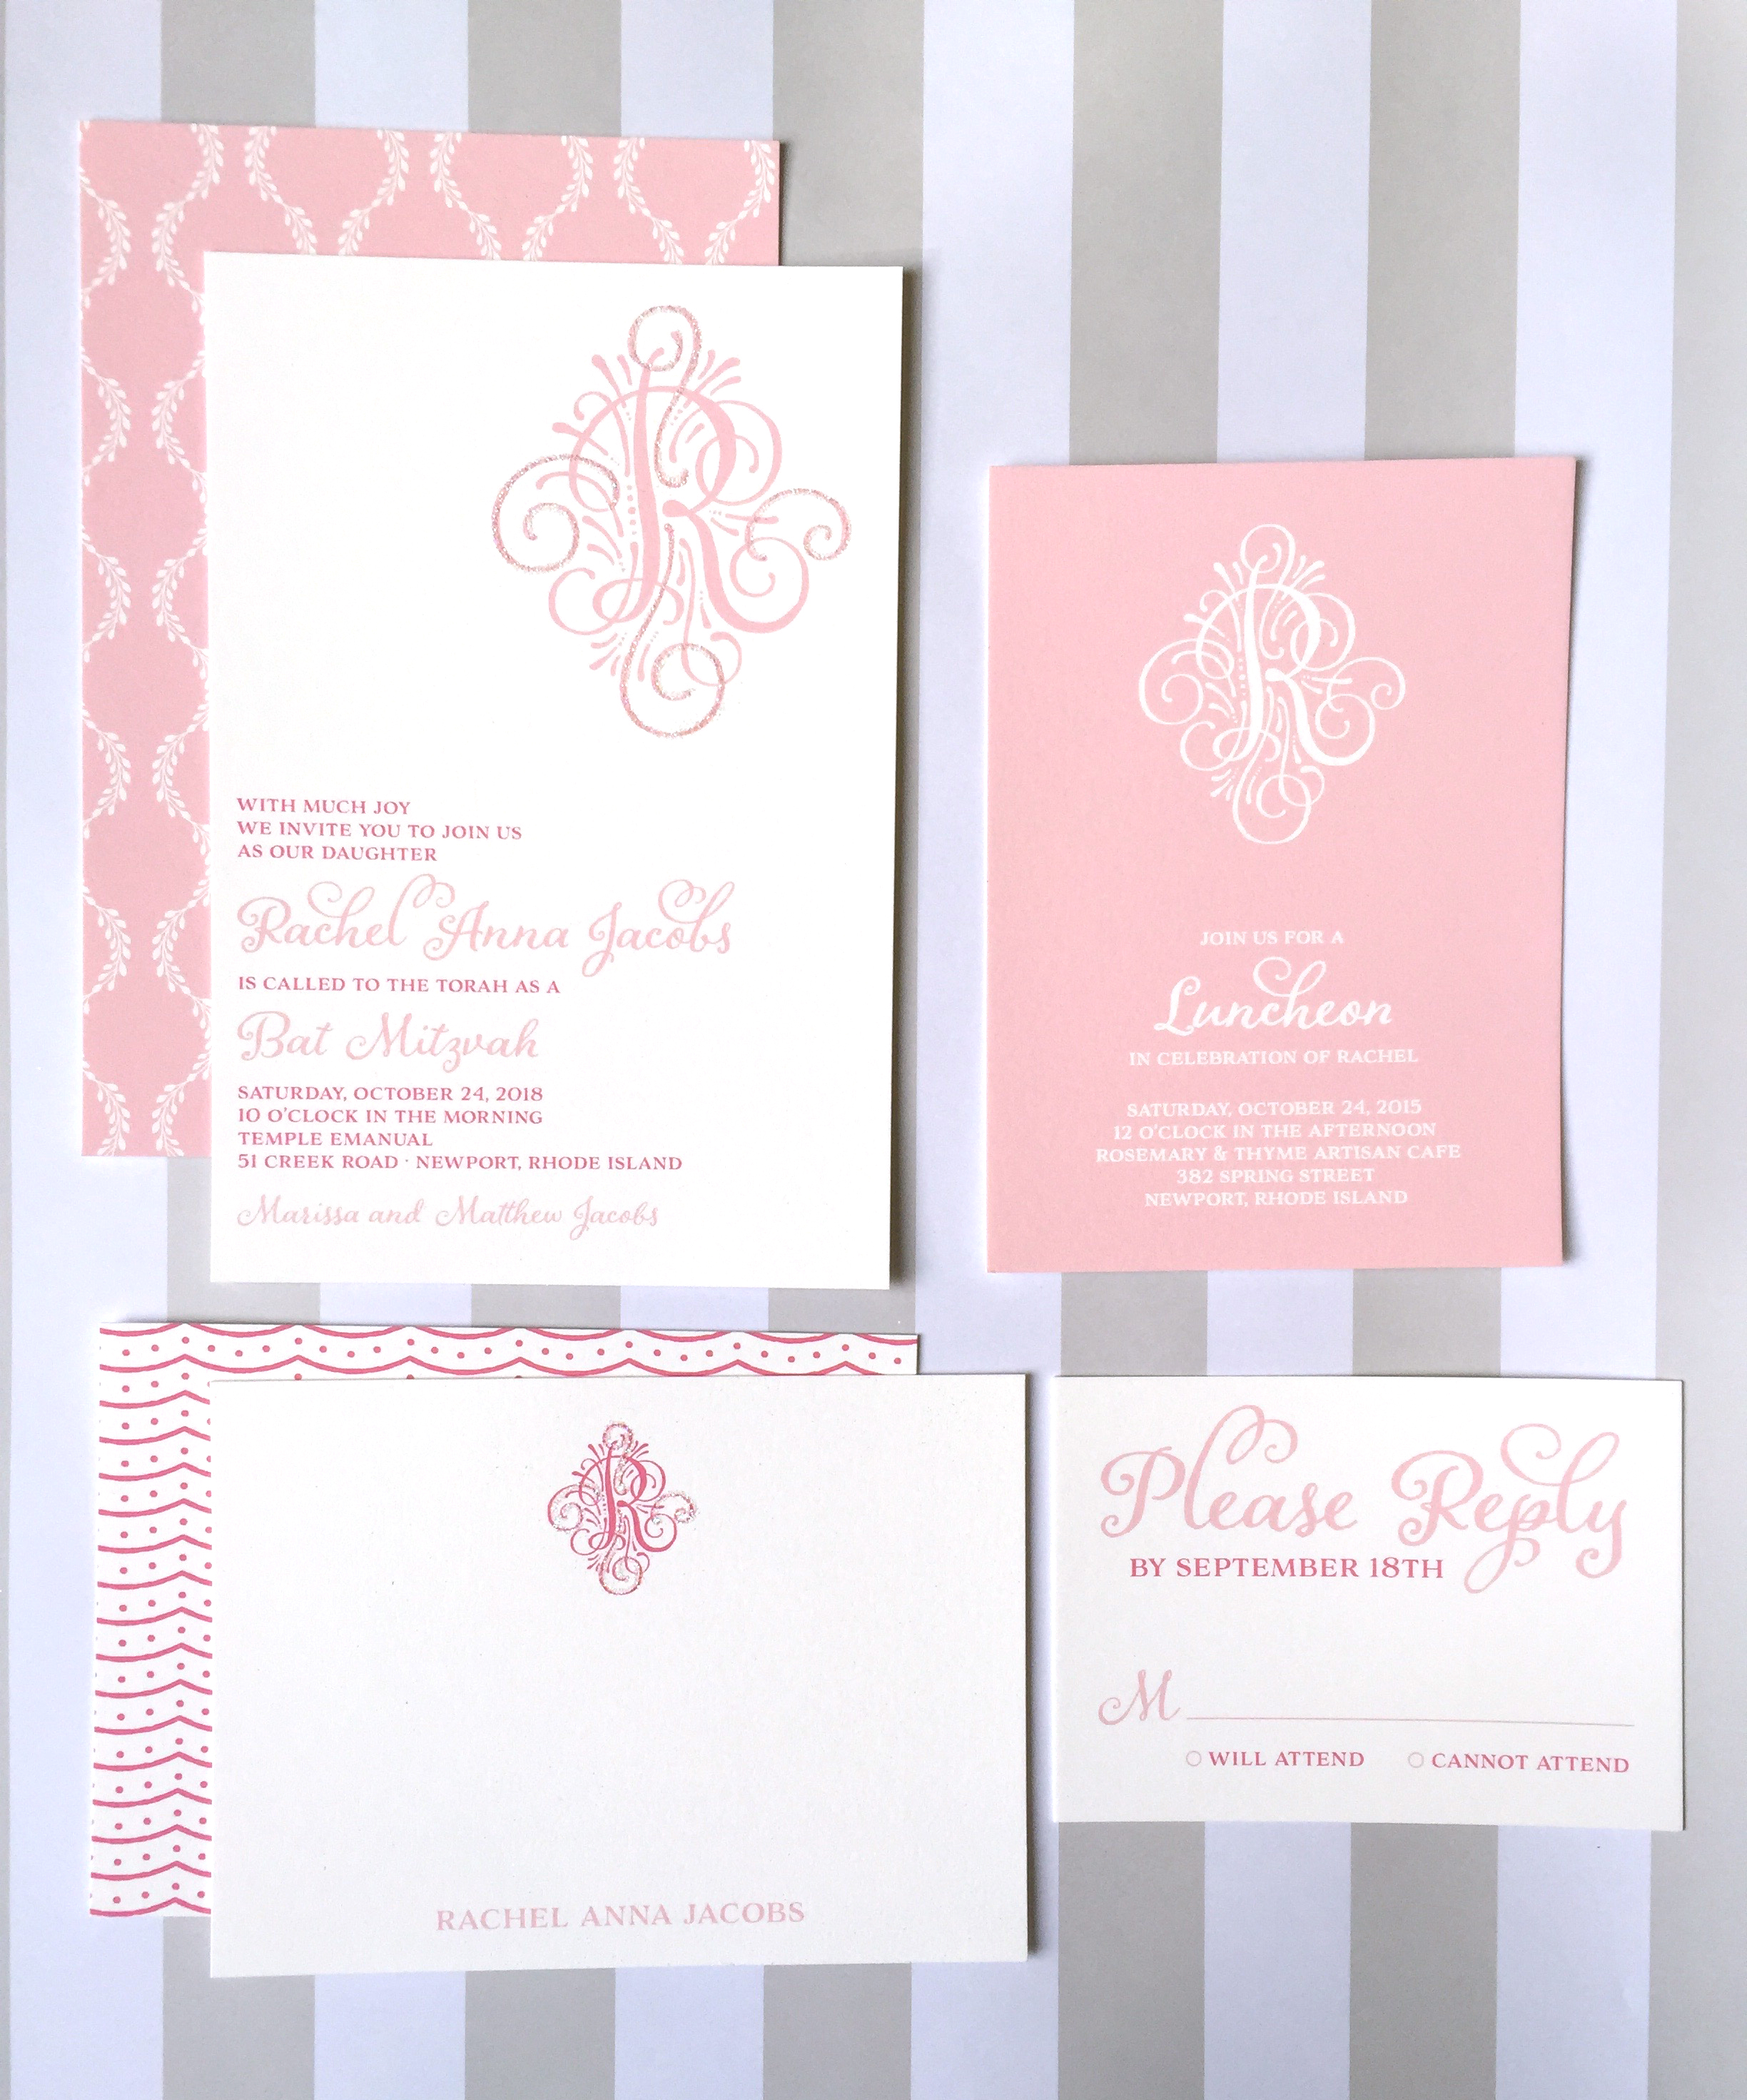 Fancy Monogram Suite 1.jpg